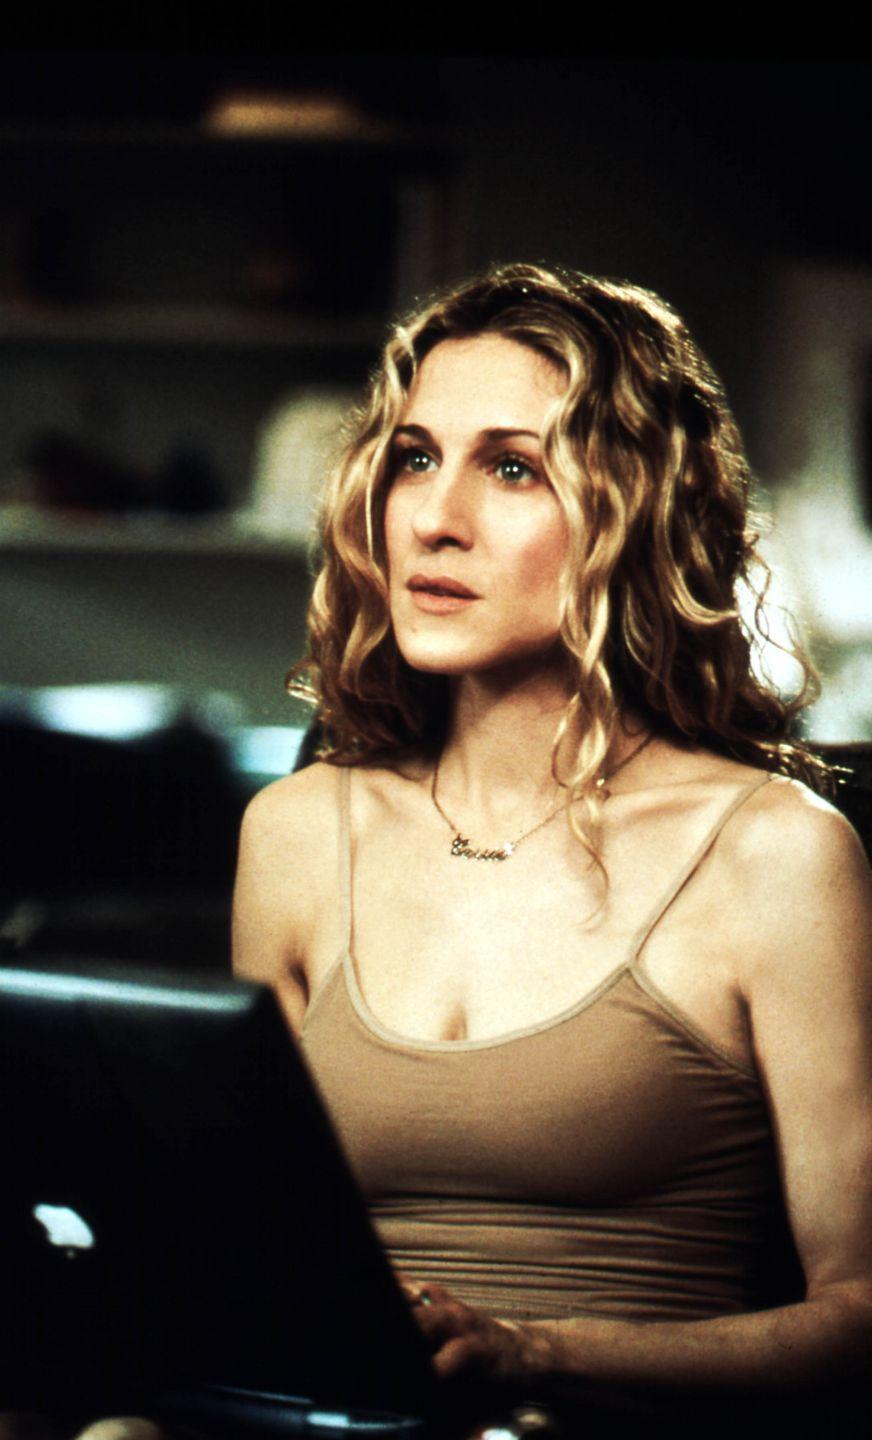 <p>It wasn't showy as some of Carrie Bradshaw's other statement jewels but this gold-plated chain was the piece that accompanied her throughout SATC, inspiring thousands of copycat styles along the way. </p><p>When Carrie lost it while living with Aleksandr Petrovsky (Mikhail Baryshnikov) in series six, such was her despair at losing her favourite sentimental charm that not even his offer of a string of Fred Leighton diamonds could soften the blow. Happily, the necklace turned up again in the lining of her handbag - once Carrie had decided to return to New York, of course. </p>